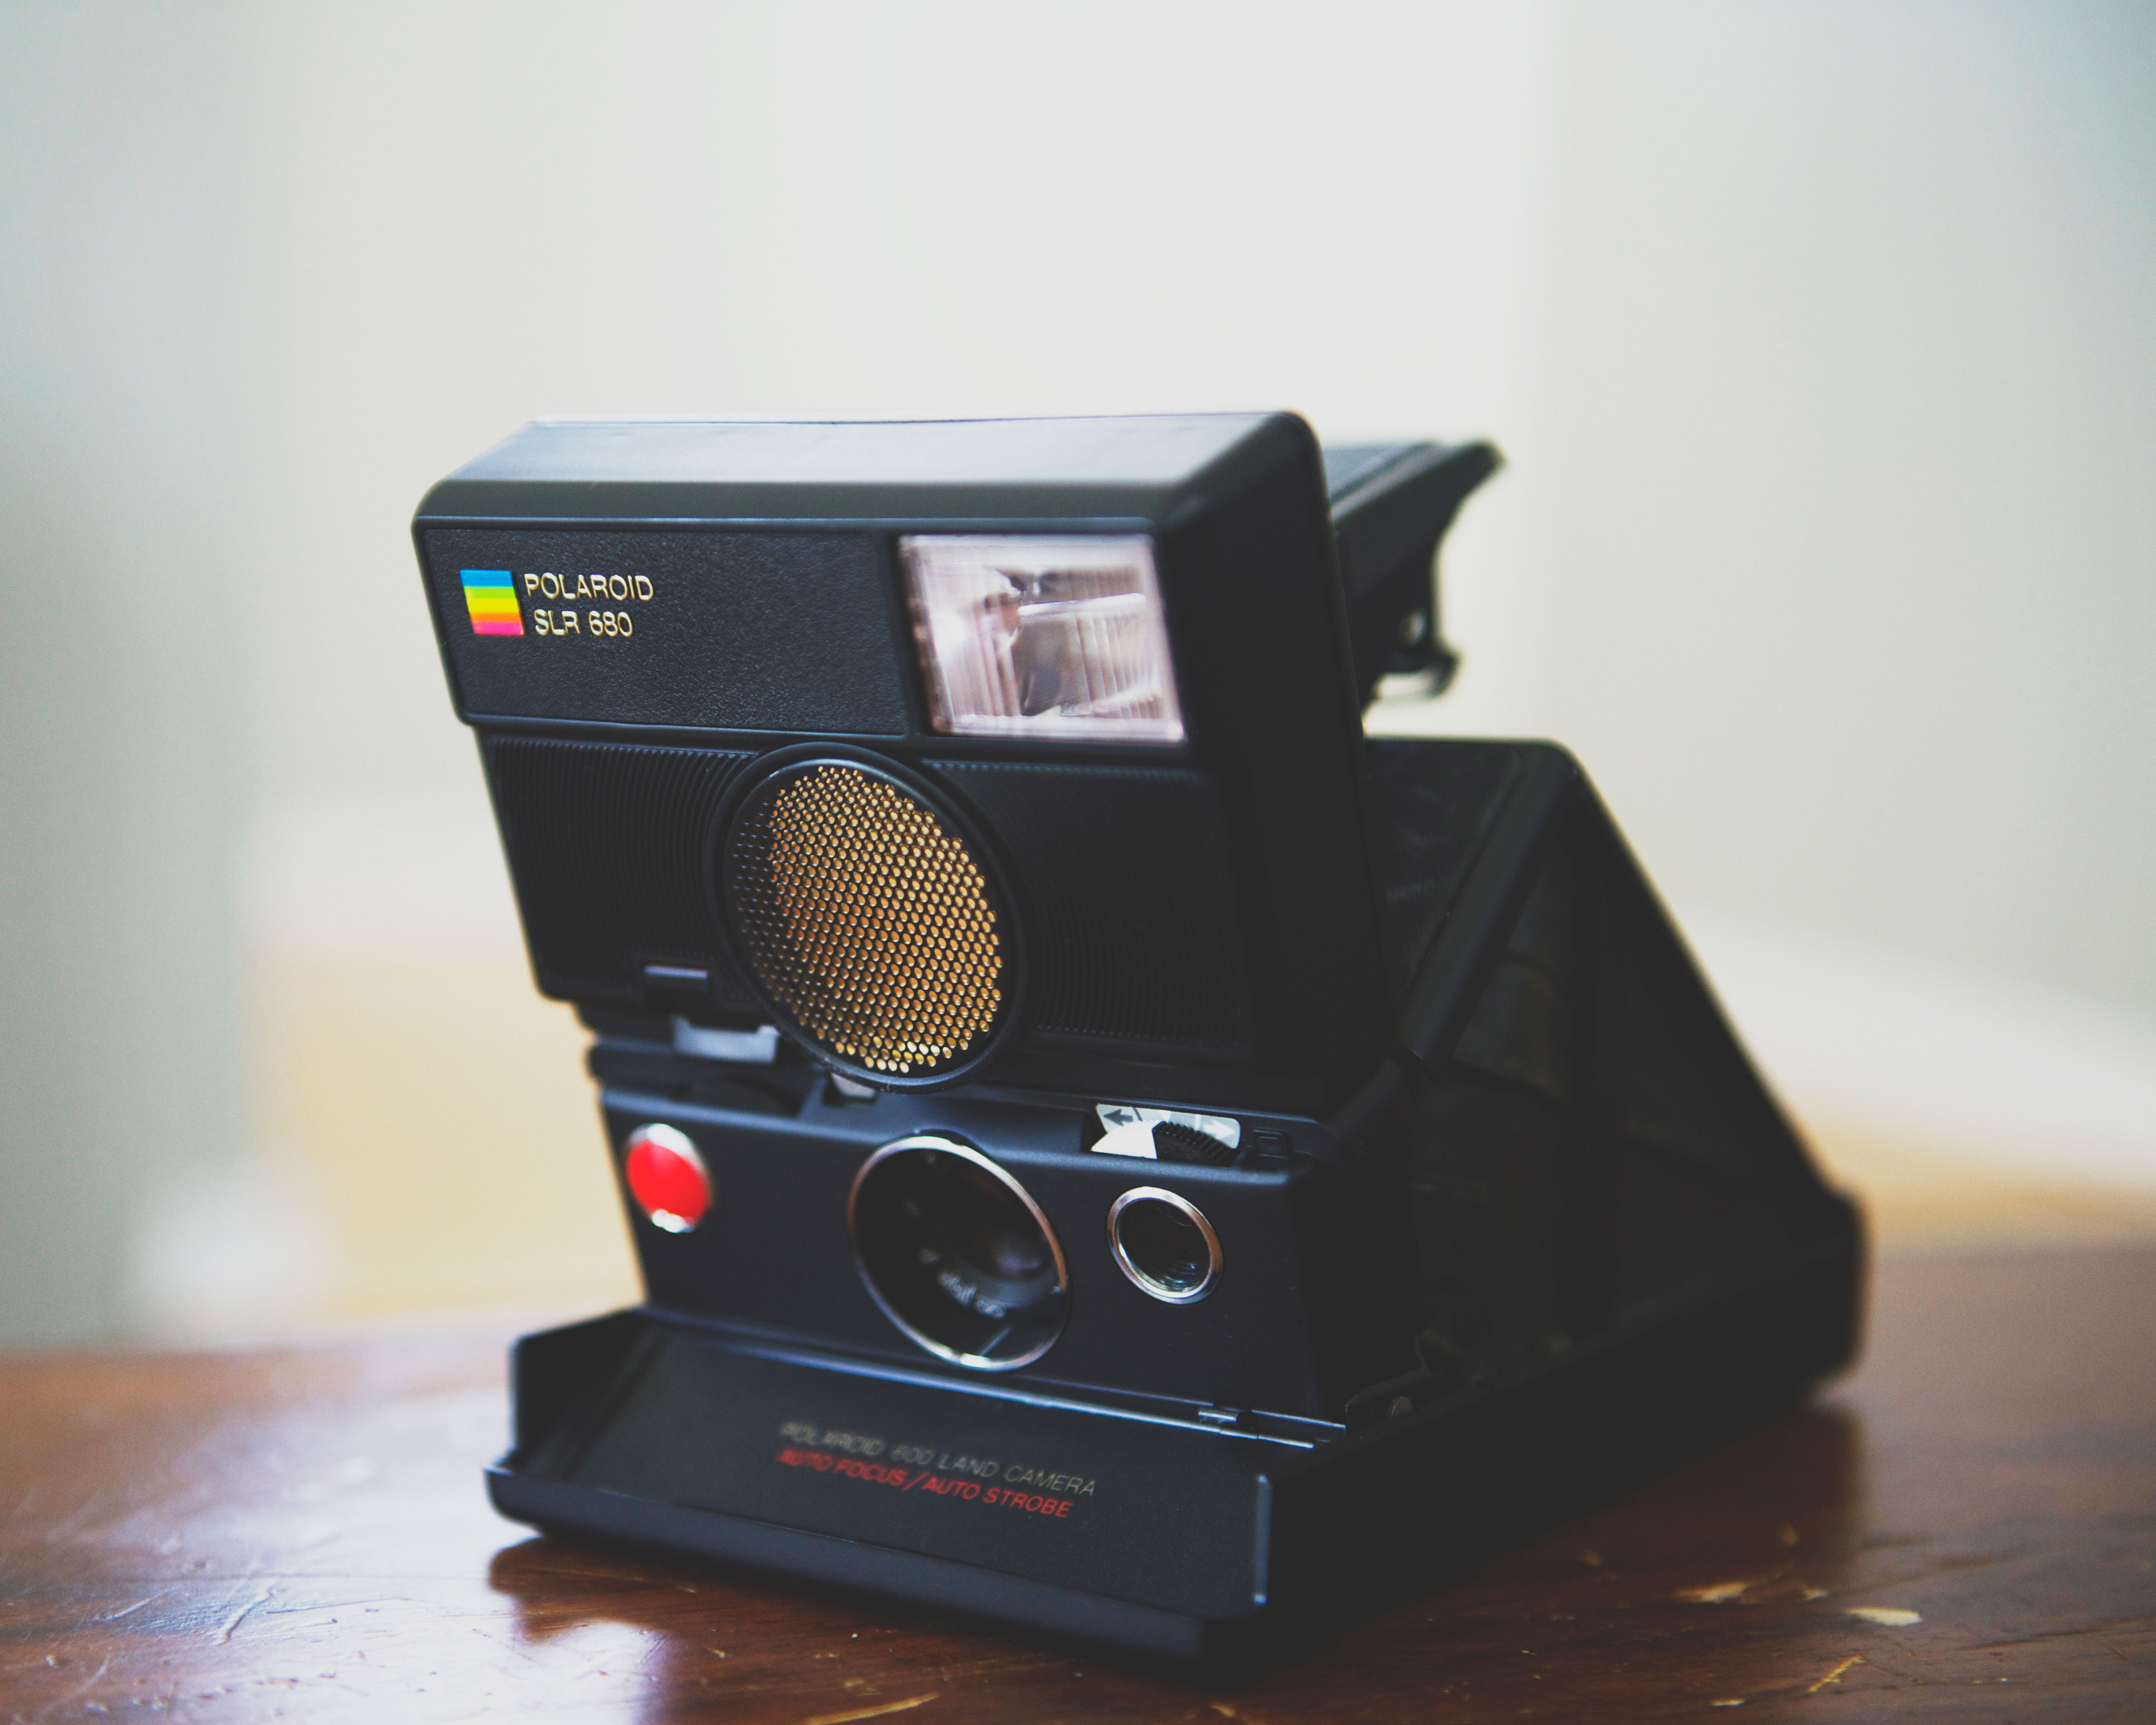 Frankie Foto » The Best Polaroid Camera is the SLR 680